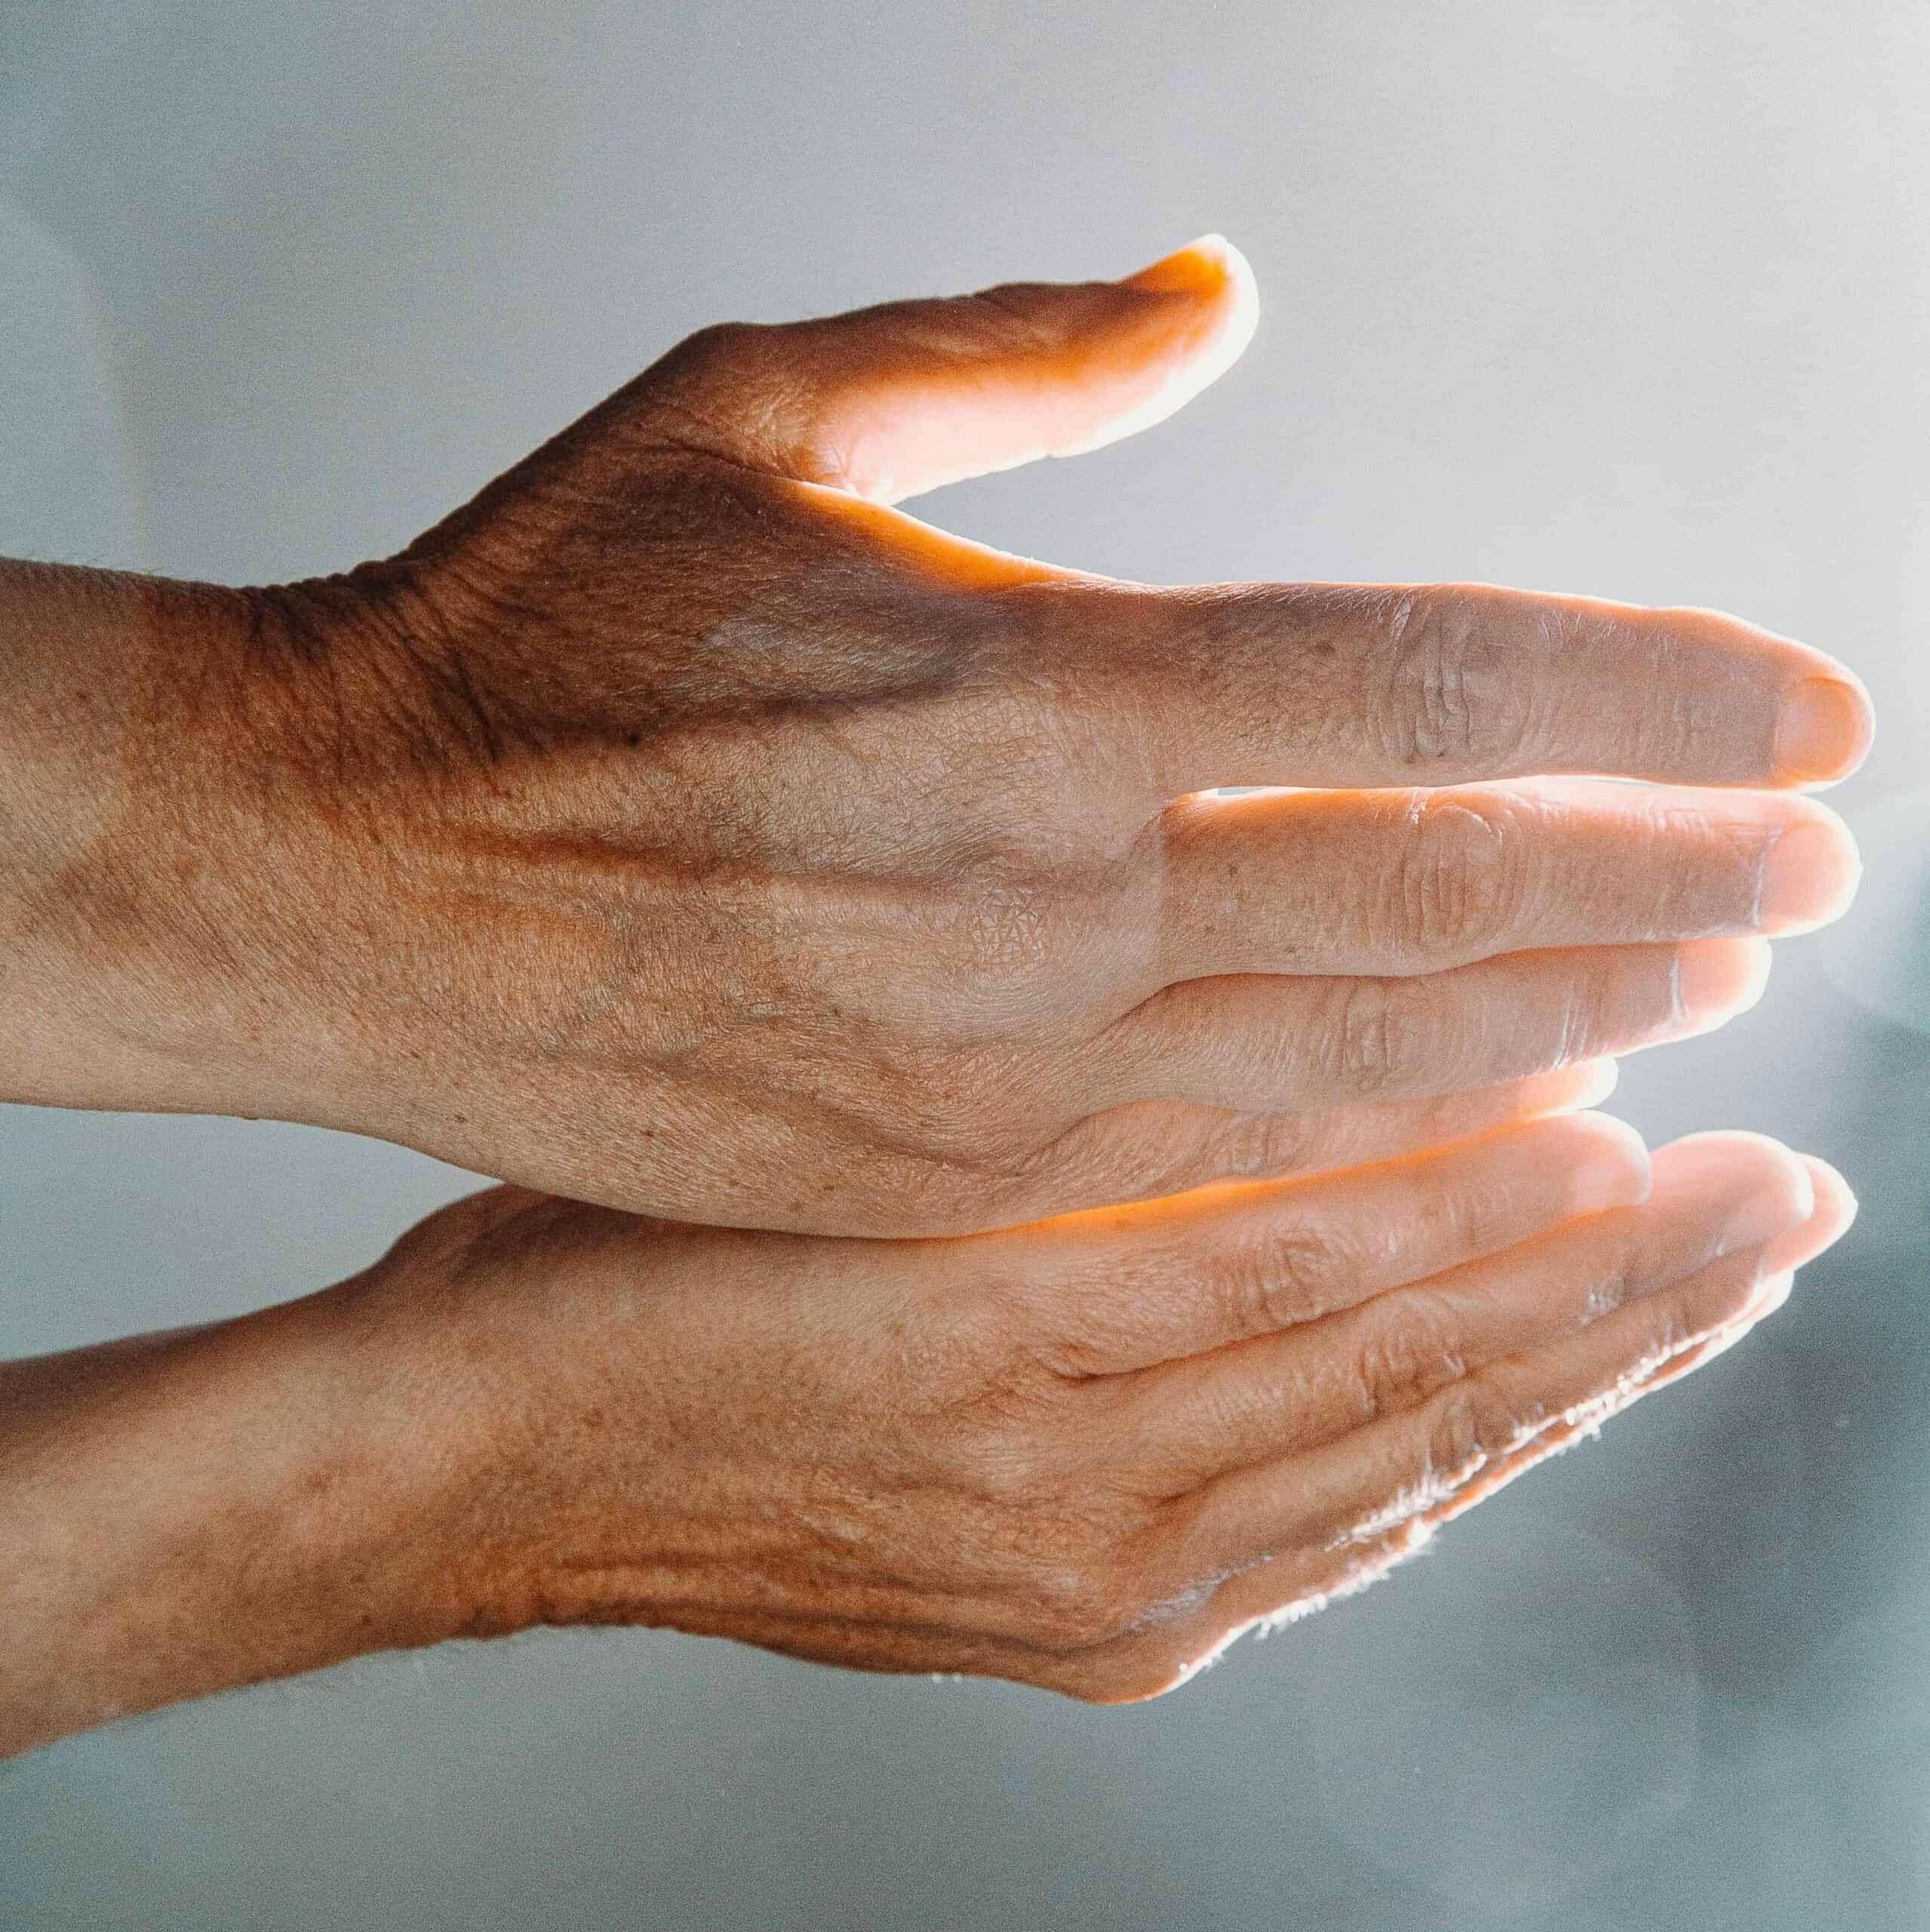 A person holding out cupped hands.